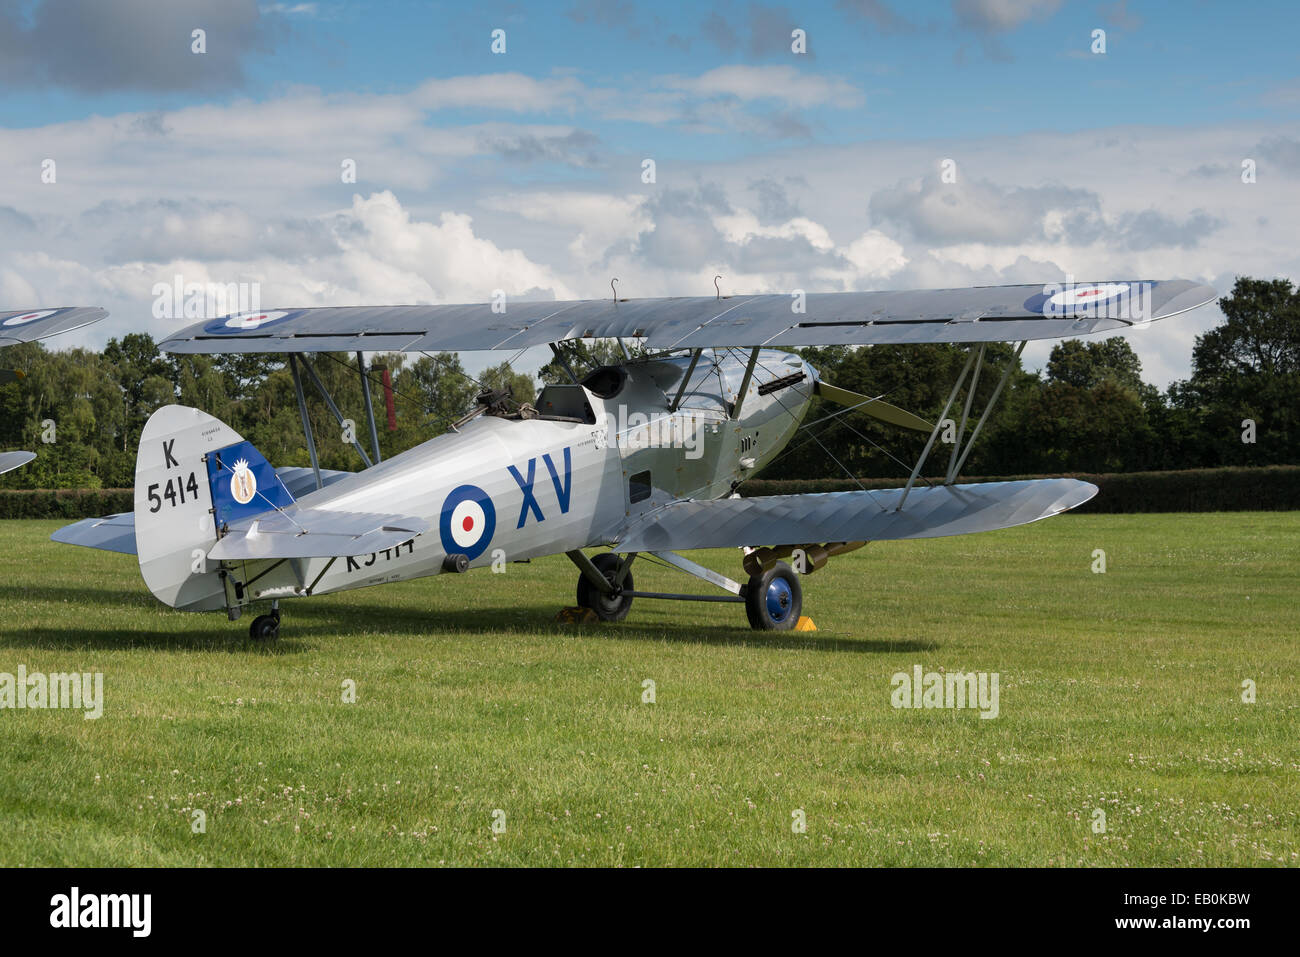 Biggleswade, UK - 29 June 2014: A vintage  Hawker Hind bi-plane on display at the Shuttleworth Collection air show. Stock Photo